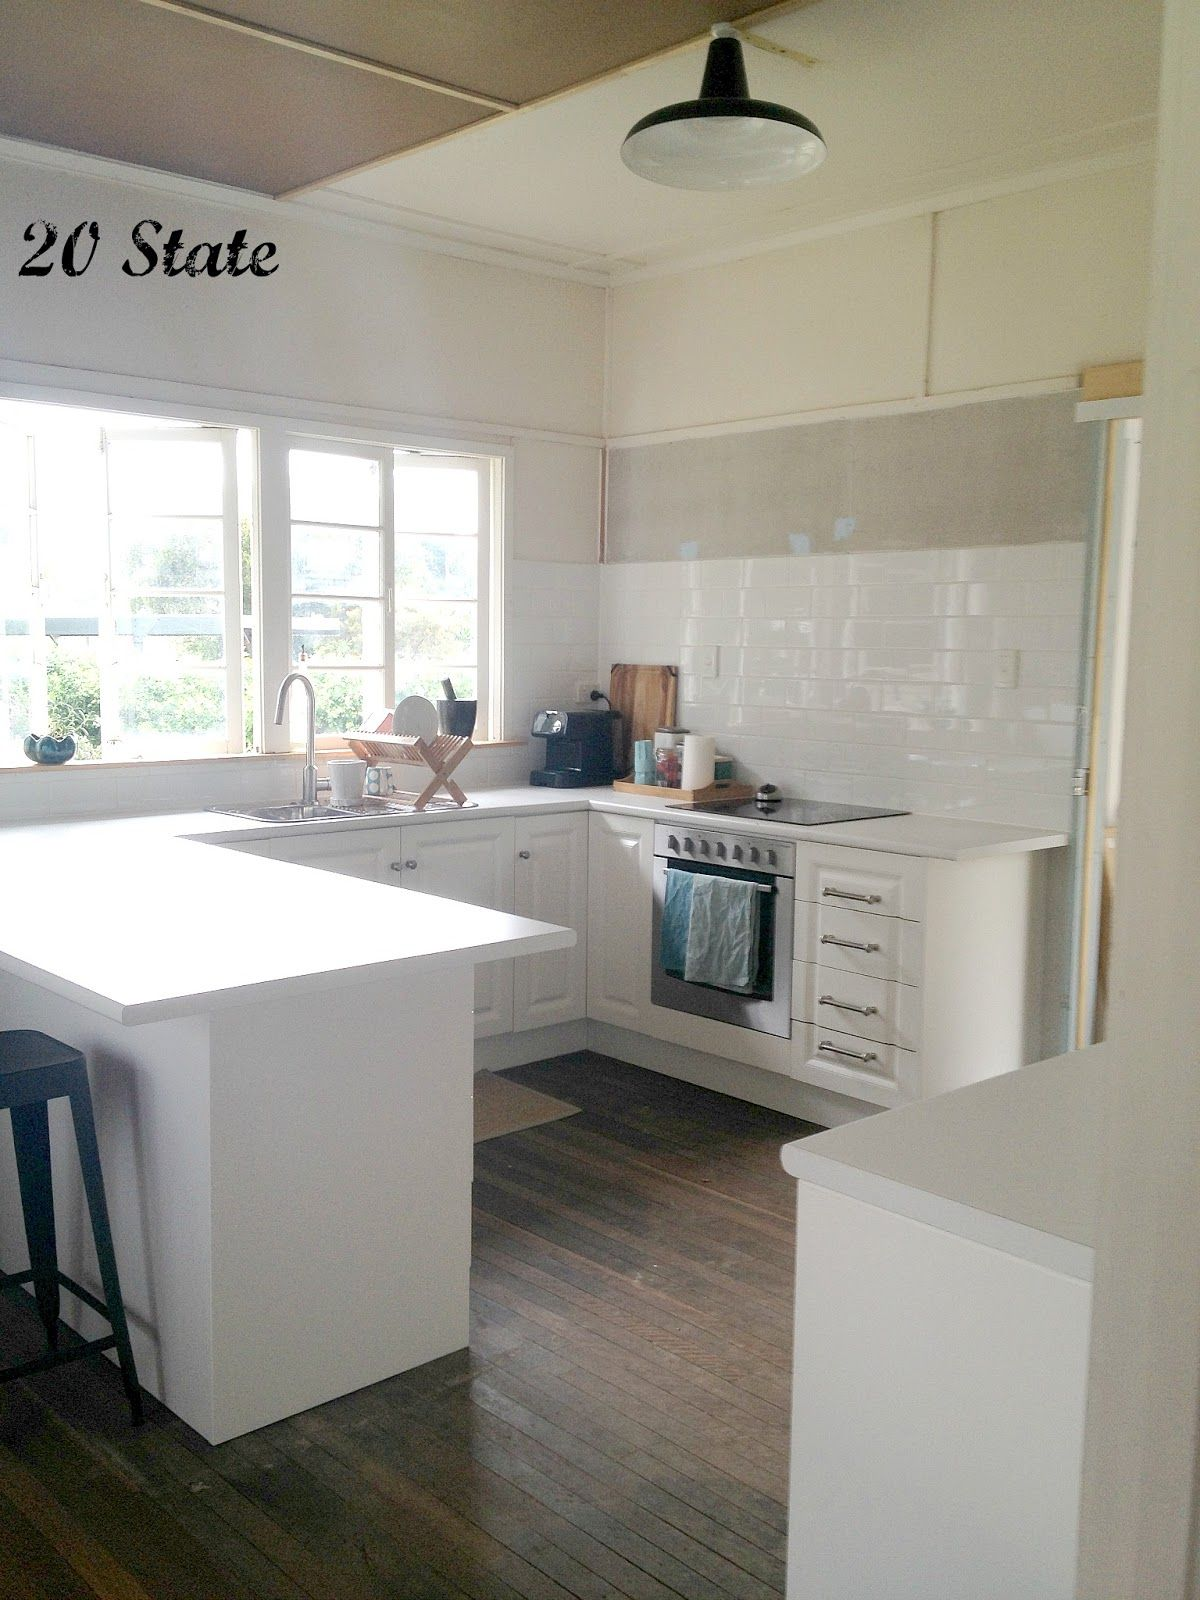 U Shaped Kitchen Layout With Peninsula 20 state: white flatpack u shaped kitchen with island - just add